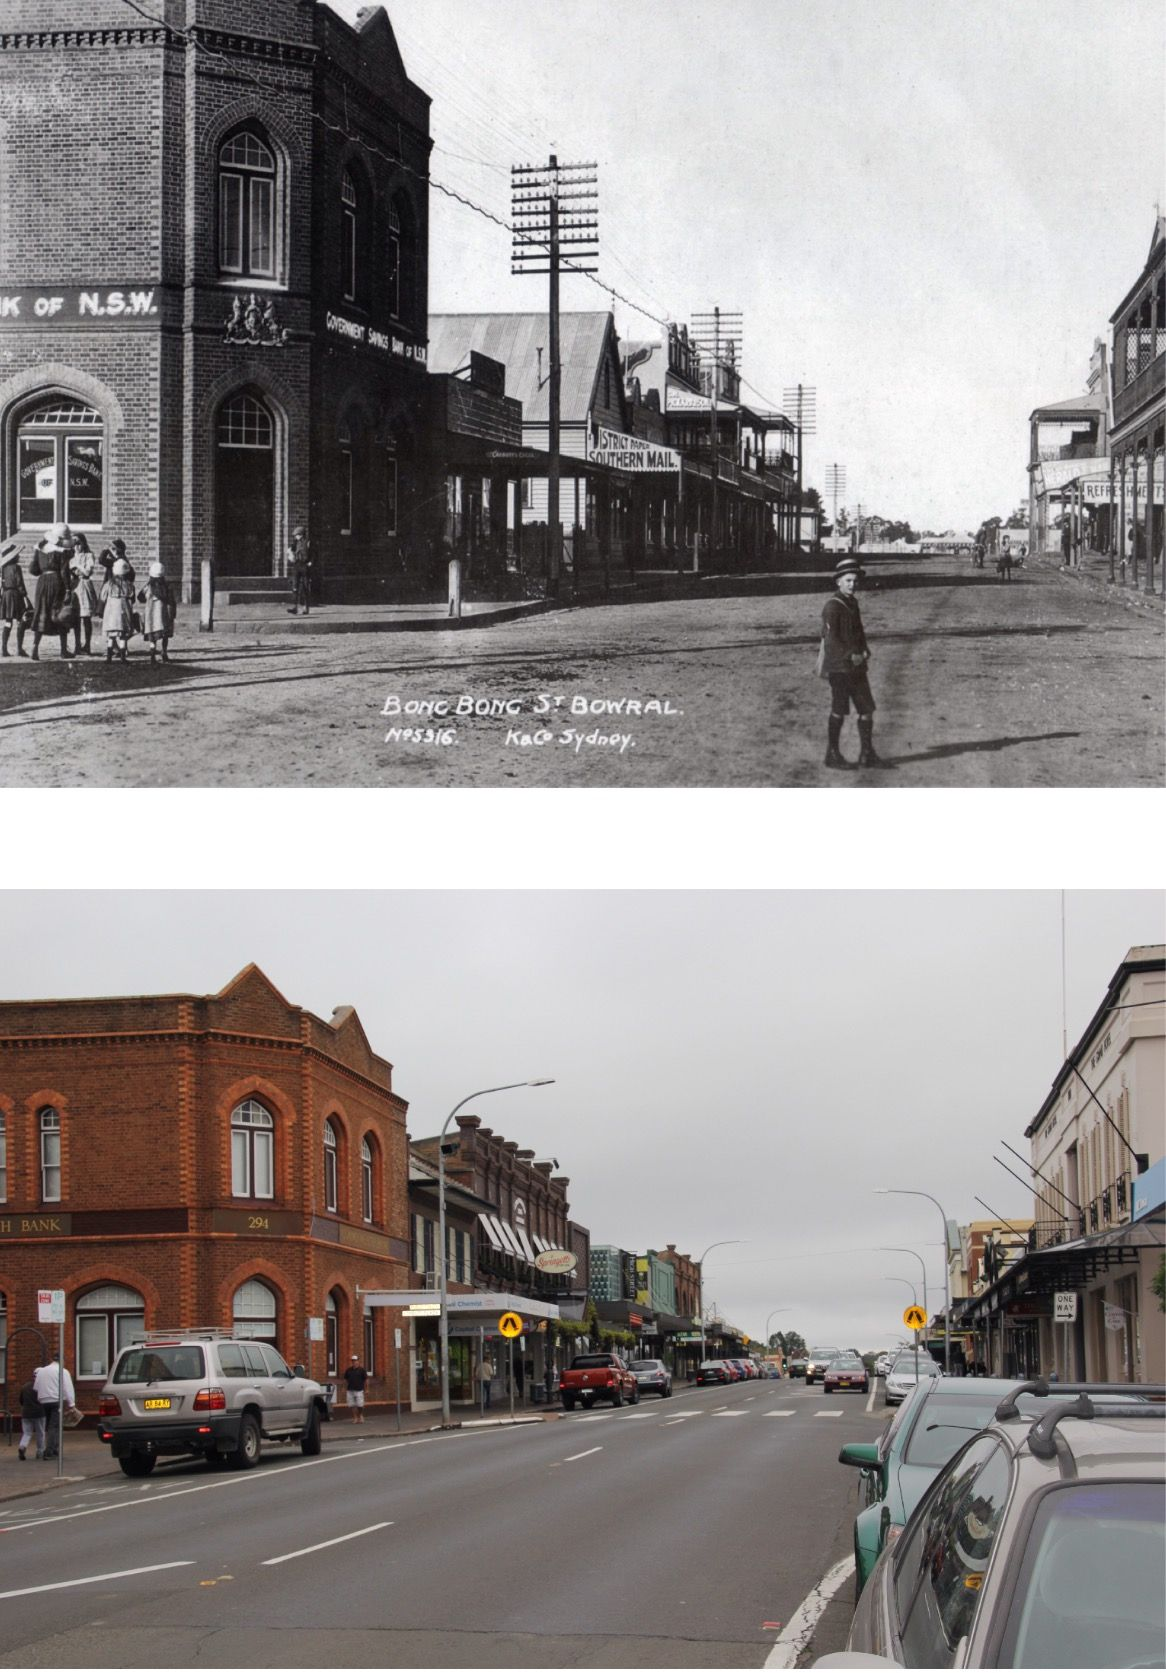 Main commercial street in Bowral, Southern Highlands NSW AUSTRALIA. Top image c.1900, bottom image 2015.